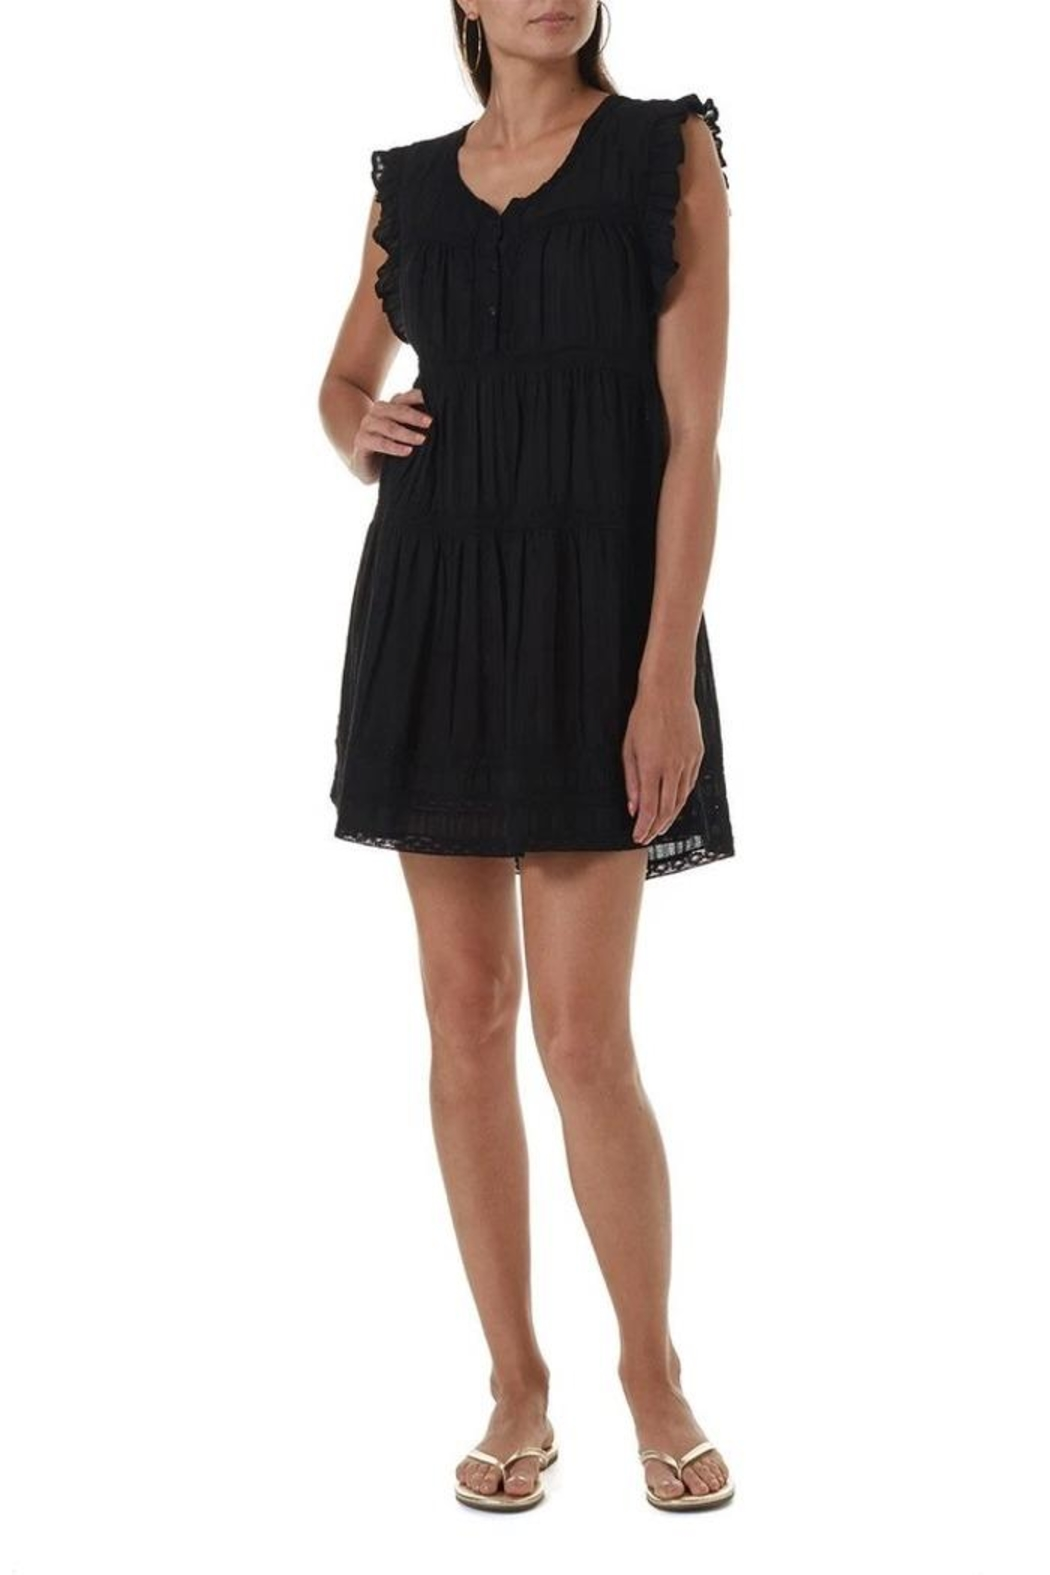 Melissa Odabash Rebekah Short Dress - Main Image